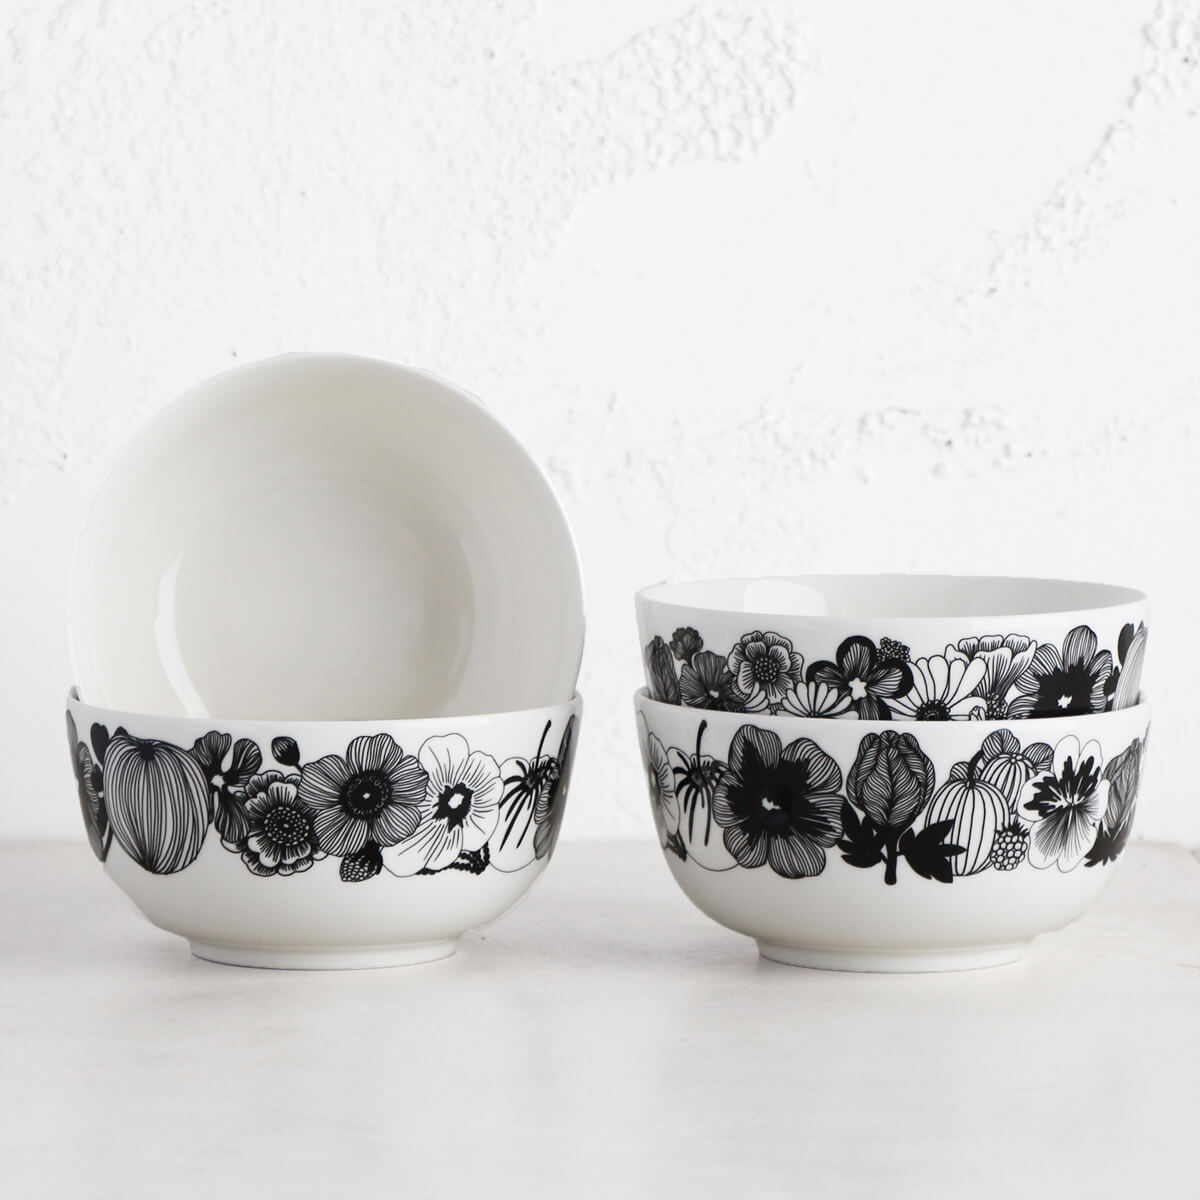 MARIMEKKO  |  OIVA SIIRTOLAPUUTARHA SERVING DISH .9 L BUNDLE  |  BLACK + WHITE BOWL